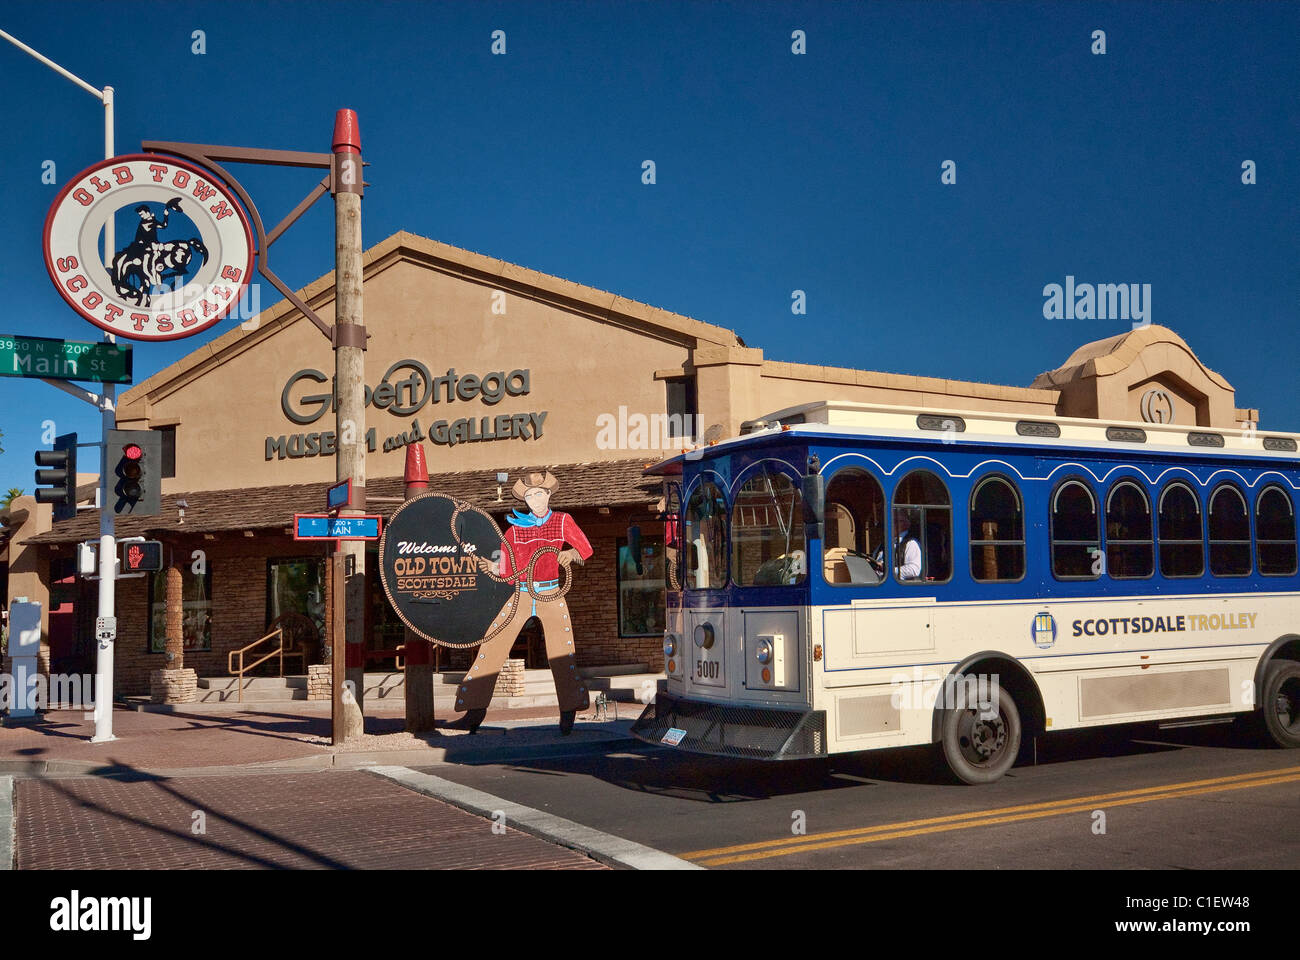 Trolley at Old Town in Scottsdale, Arizona, USA - Stock Image